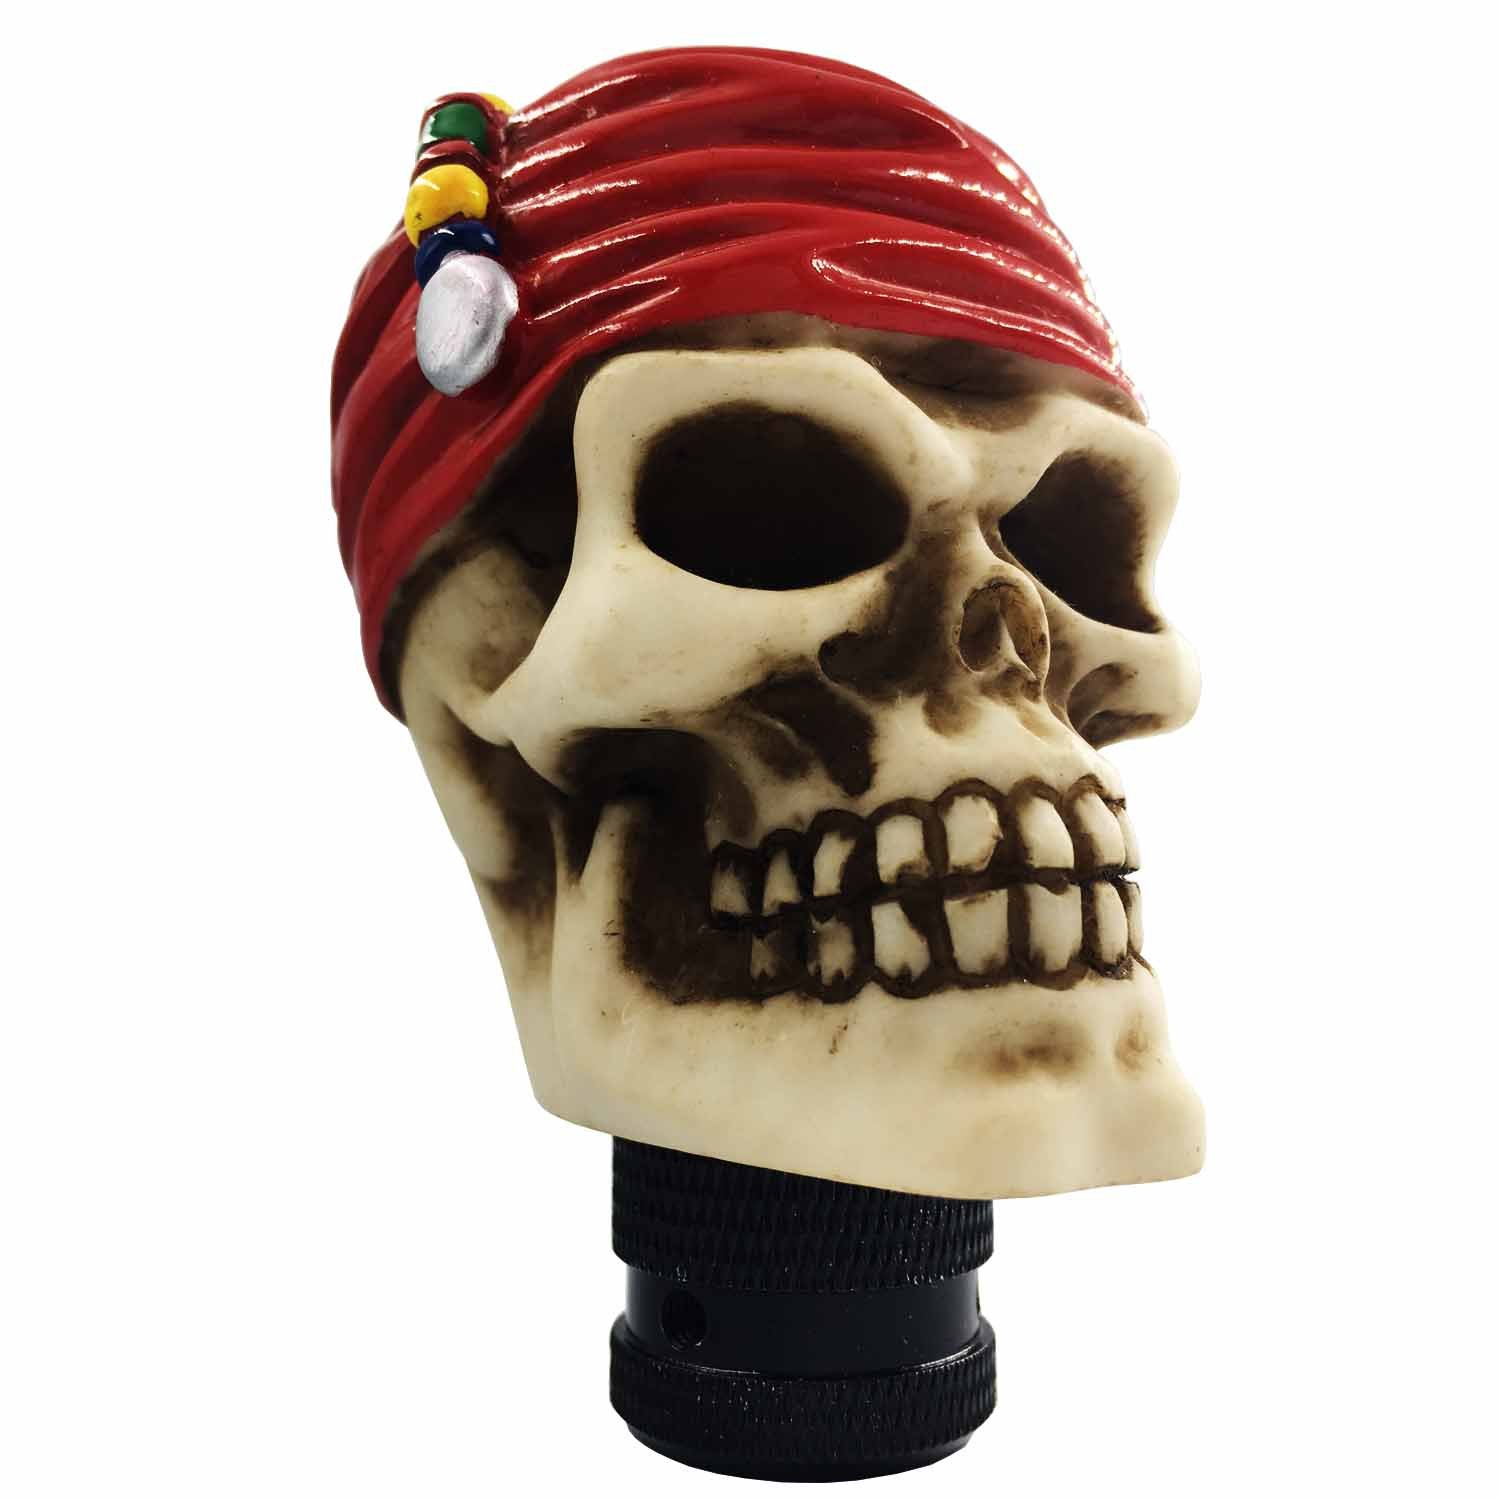 Bashineng Skull Shift Knob Resin Red Headband Manual Automatic Transmission Knobs Shifter Lever Car Accessory